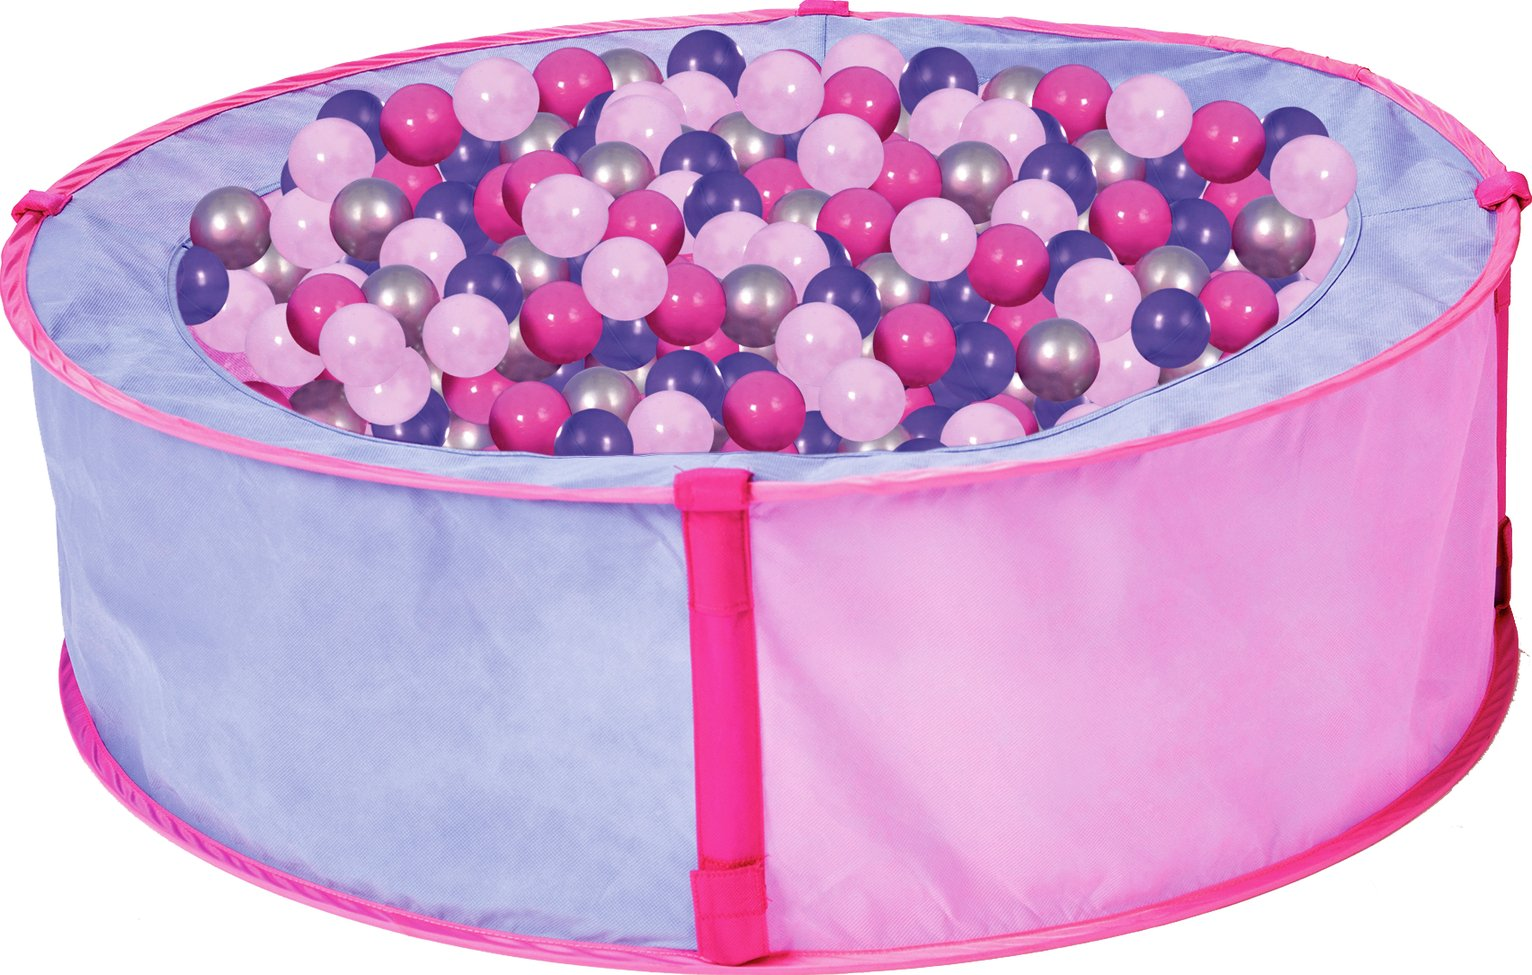 chad-valley-pink-pop-up-ball-pit